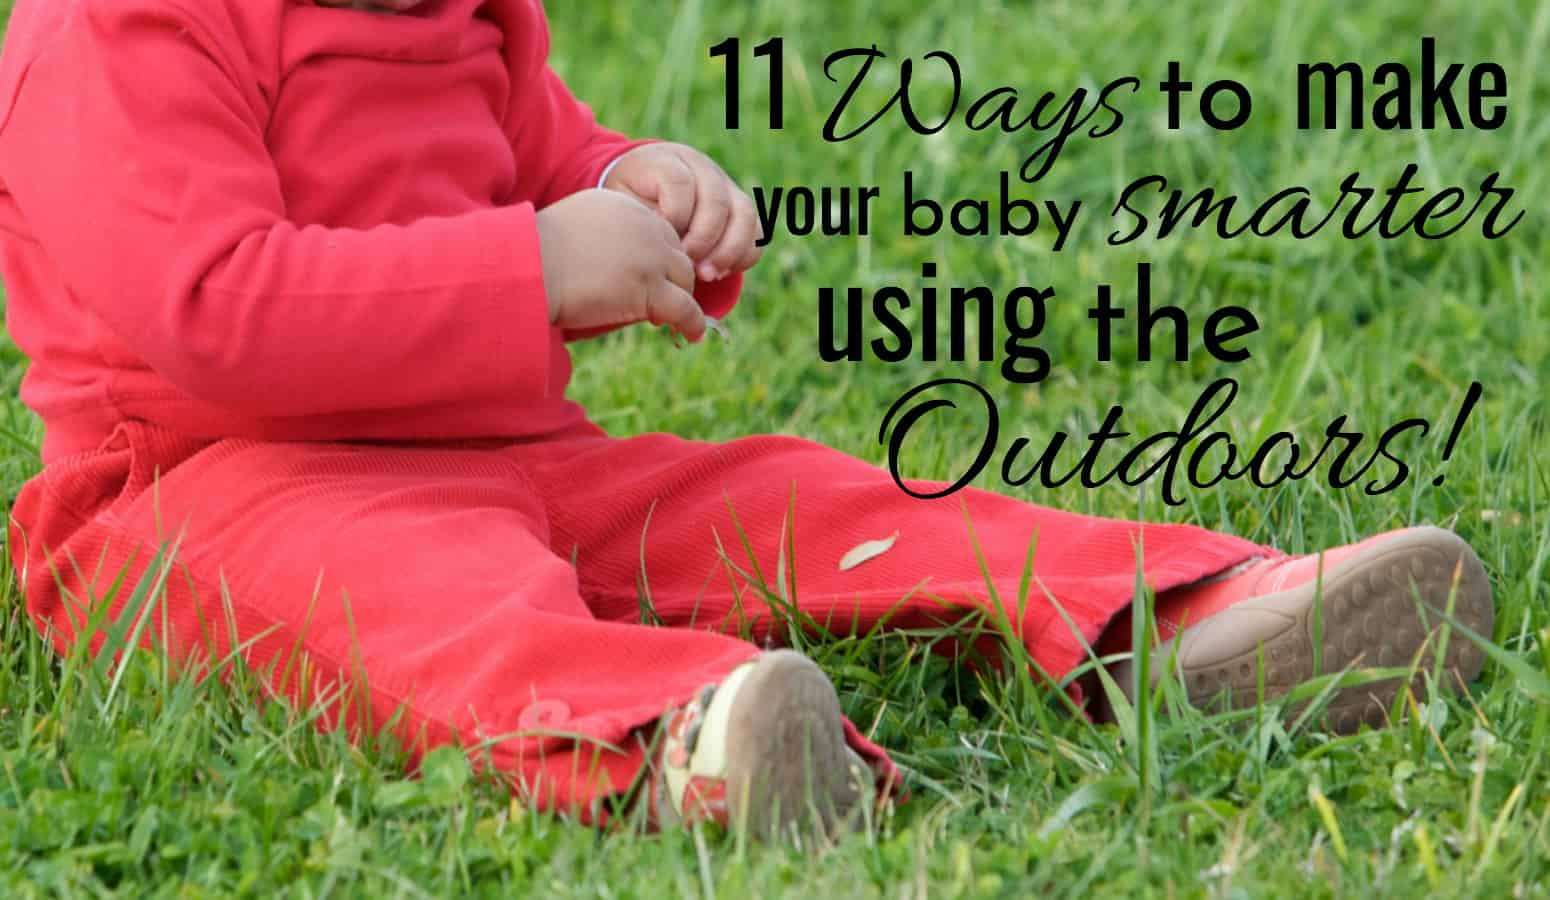 11 ways to make your baby smarter using the outdoors. Baby sitting in the grass.